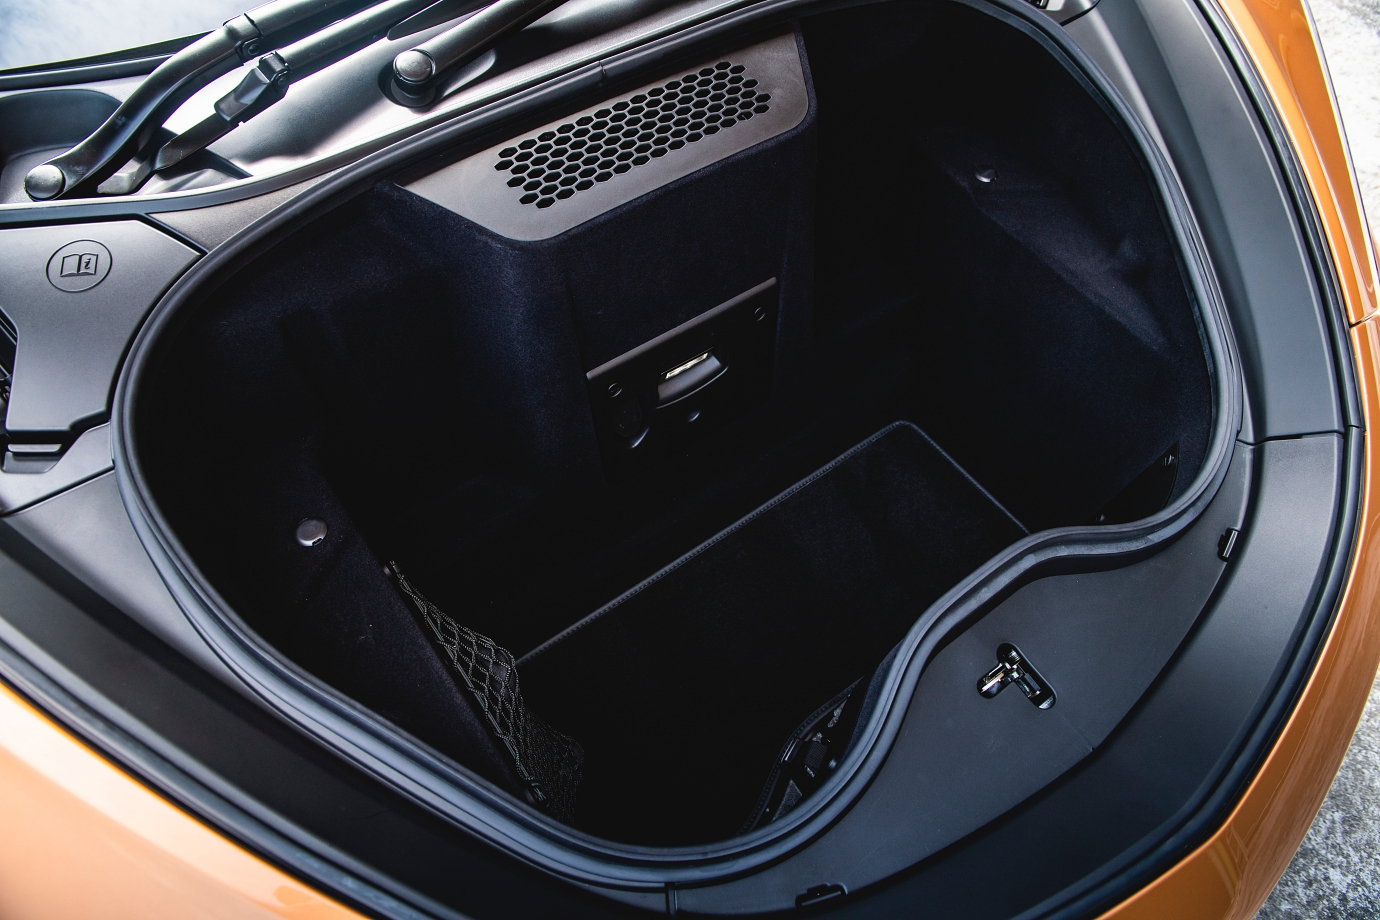 Frunk offers 150-litres of storage